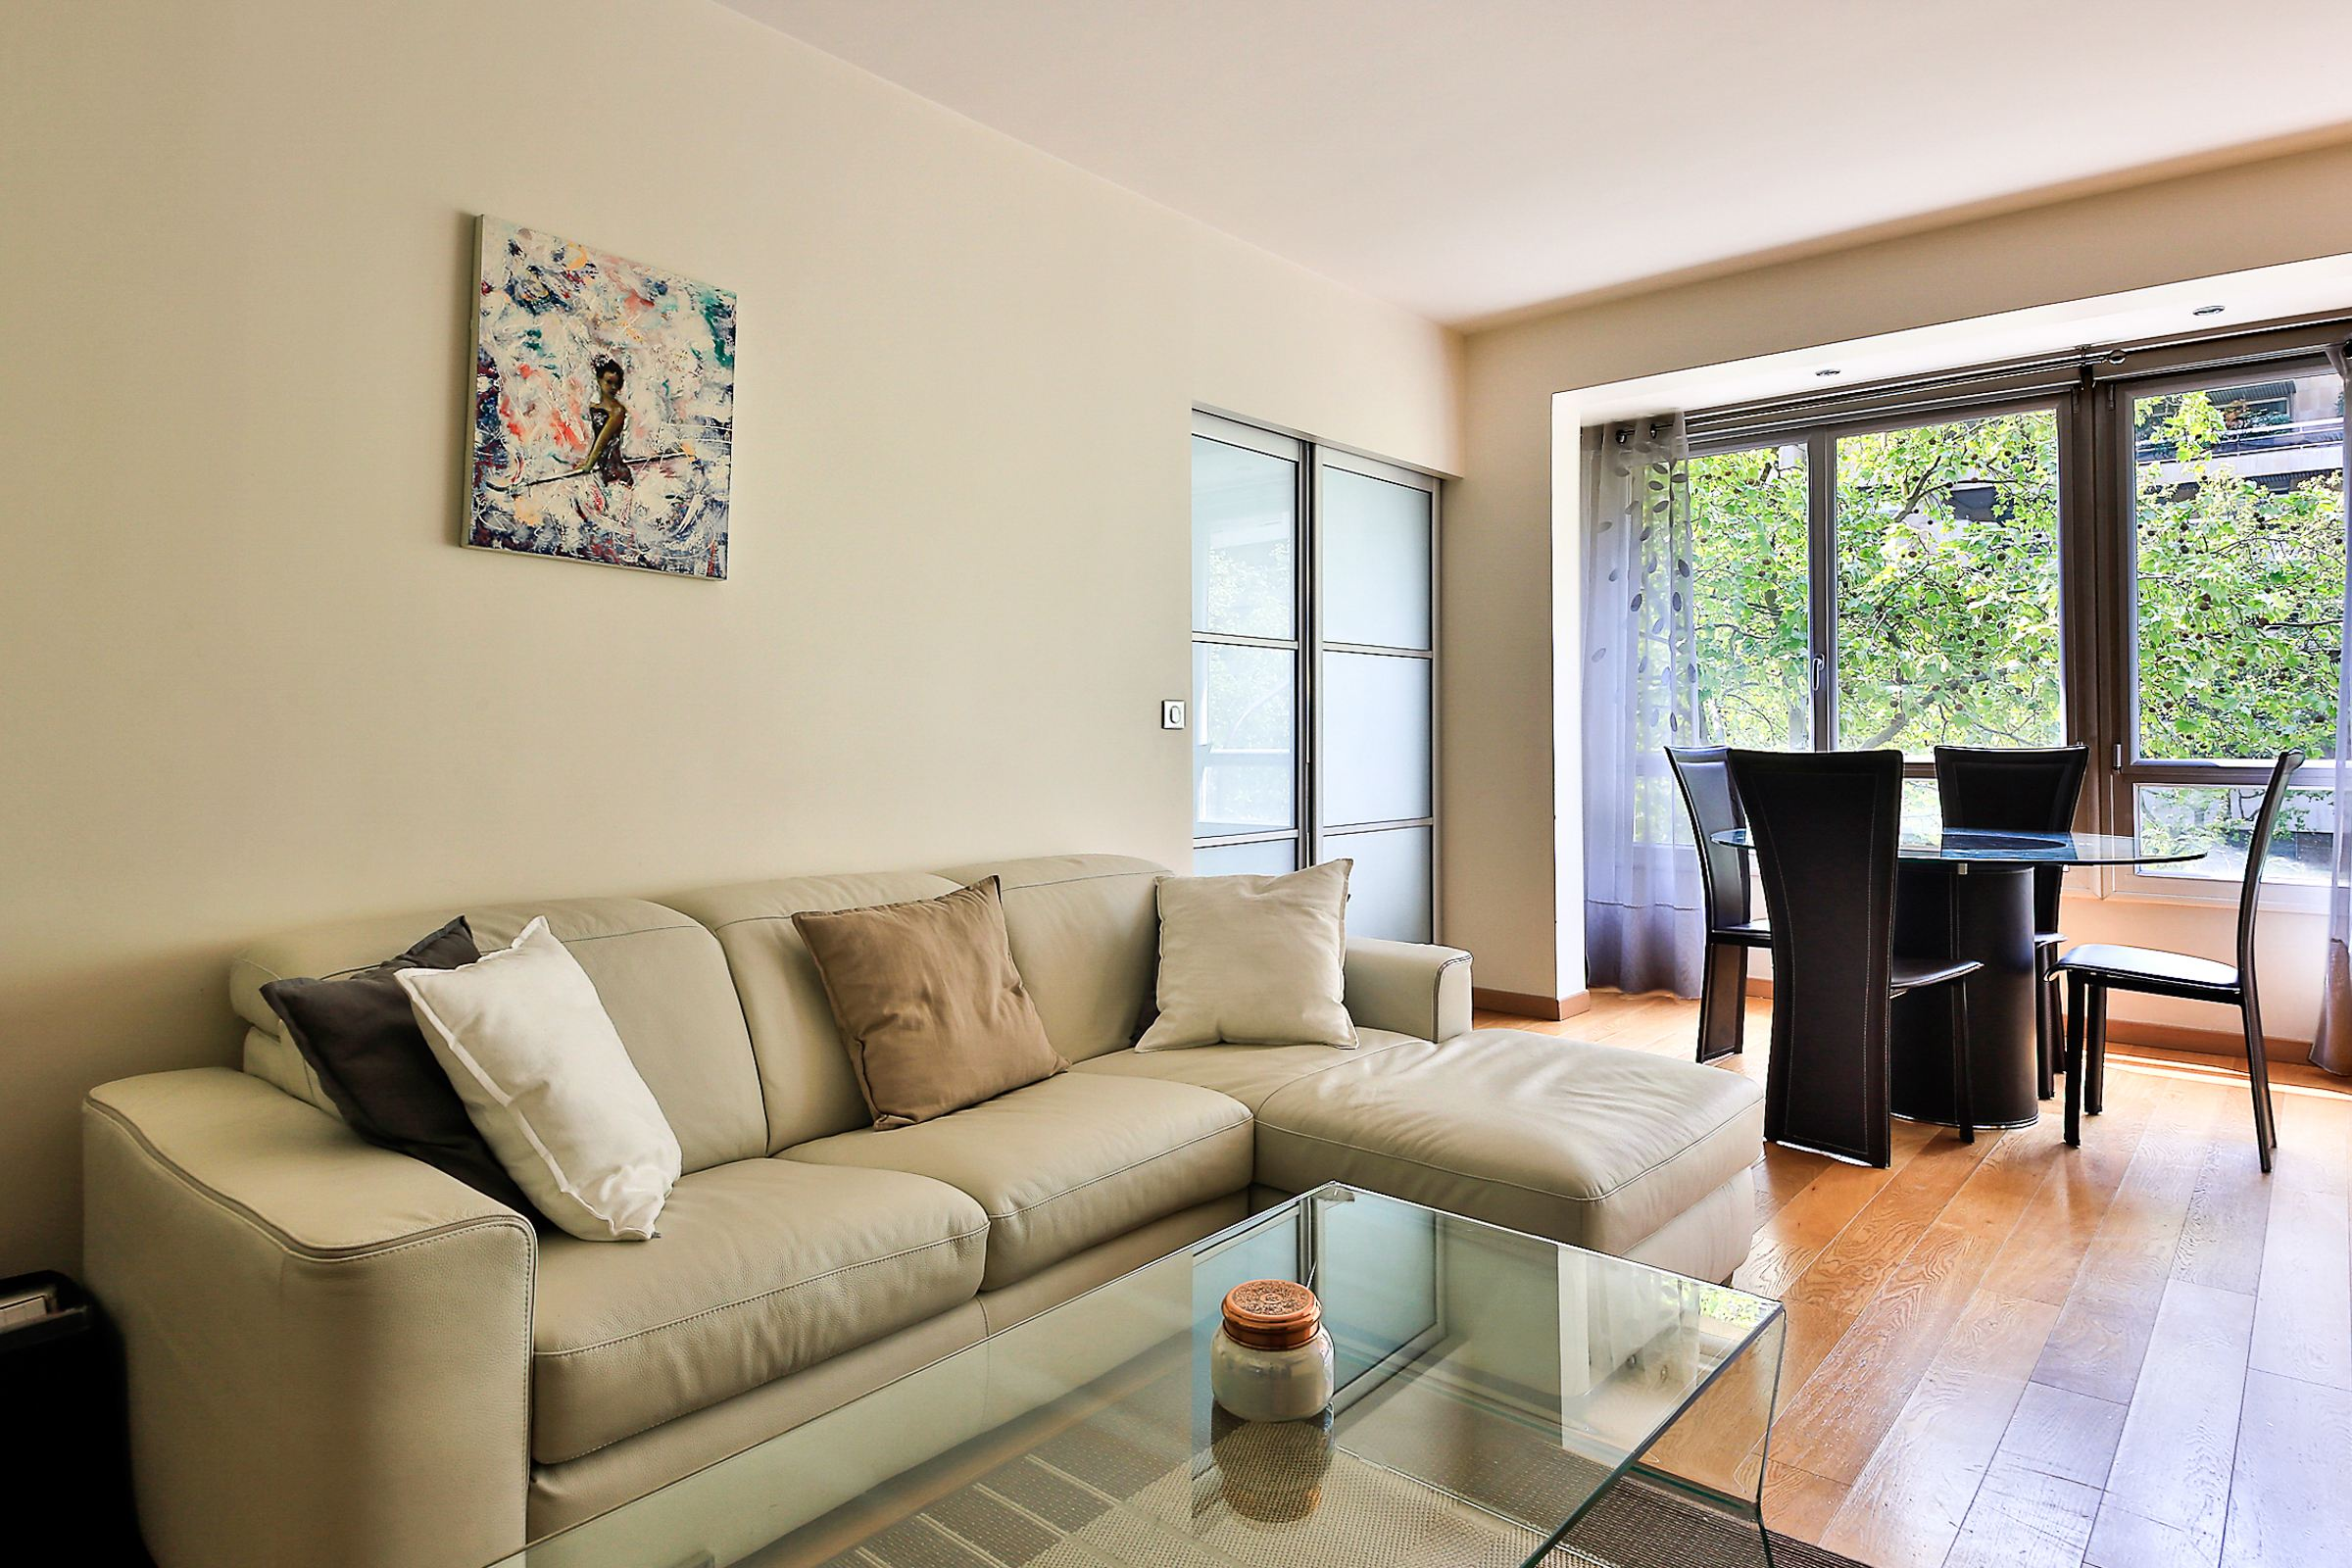 Квартира для того Продажа на Paris 16 - Michel-Ange. Sole Agent. 76 sq.m, bright, very good layout Paris, Париж 75016 Франция